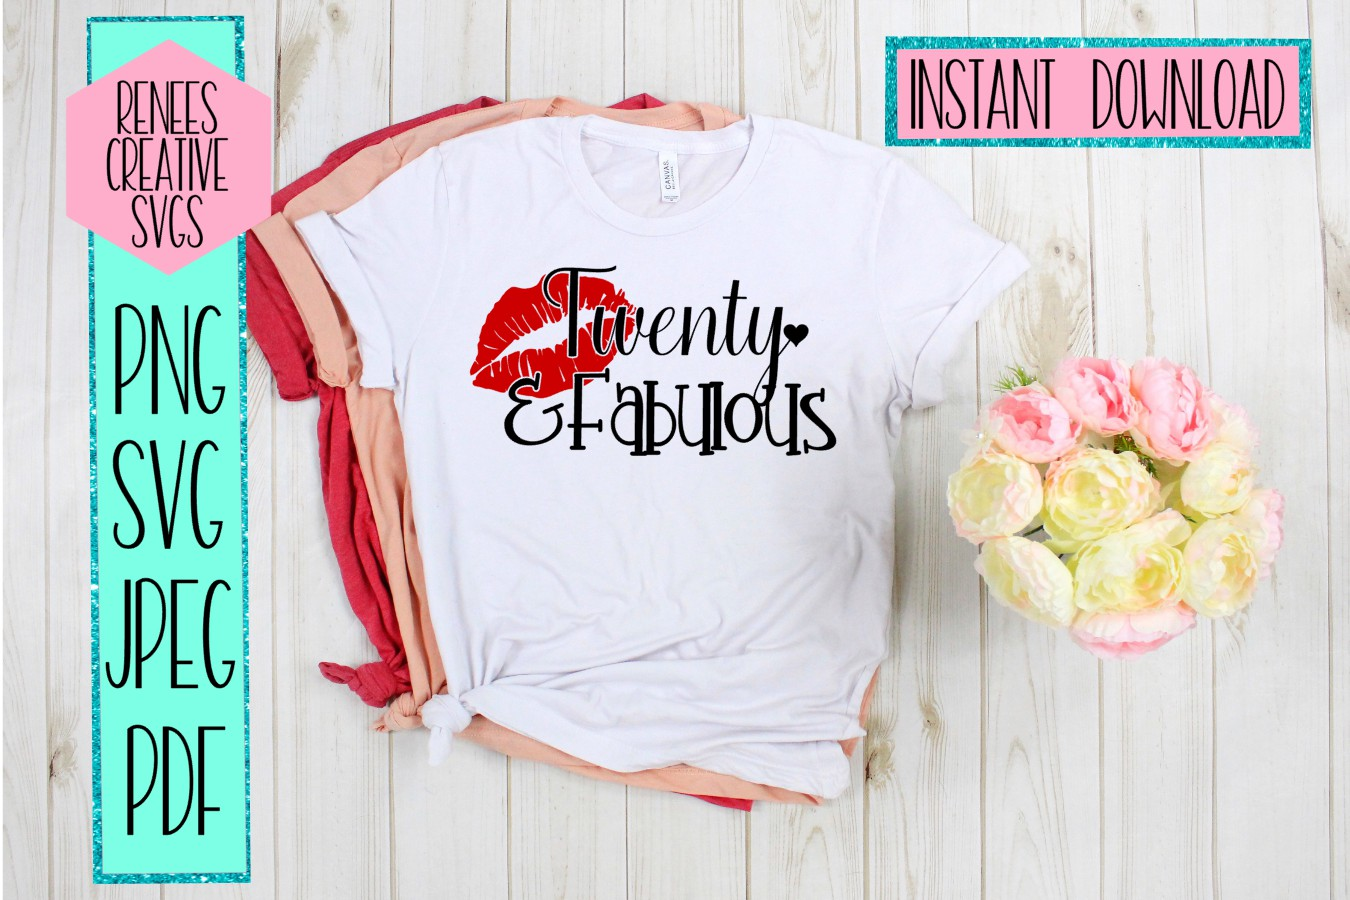 Download Free Twenty Fabulous Graphic By Reneescreativesvgs Creative Fabrica for Cricut Explore, Silhouette and other cutting machines.